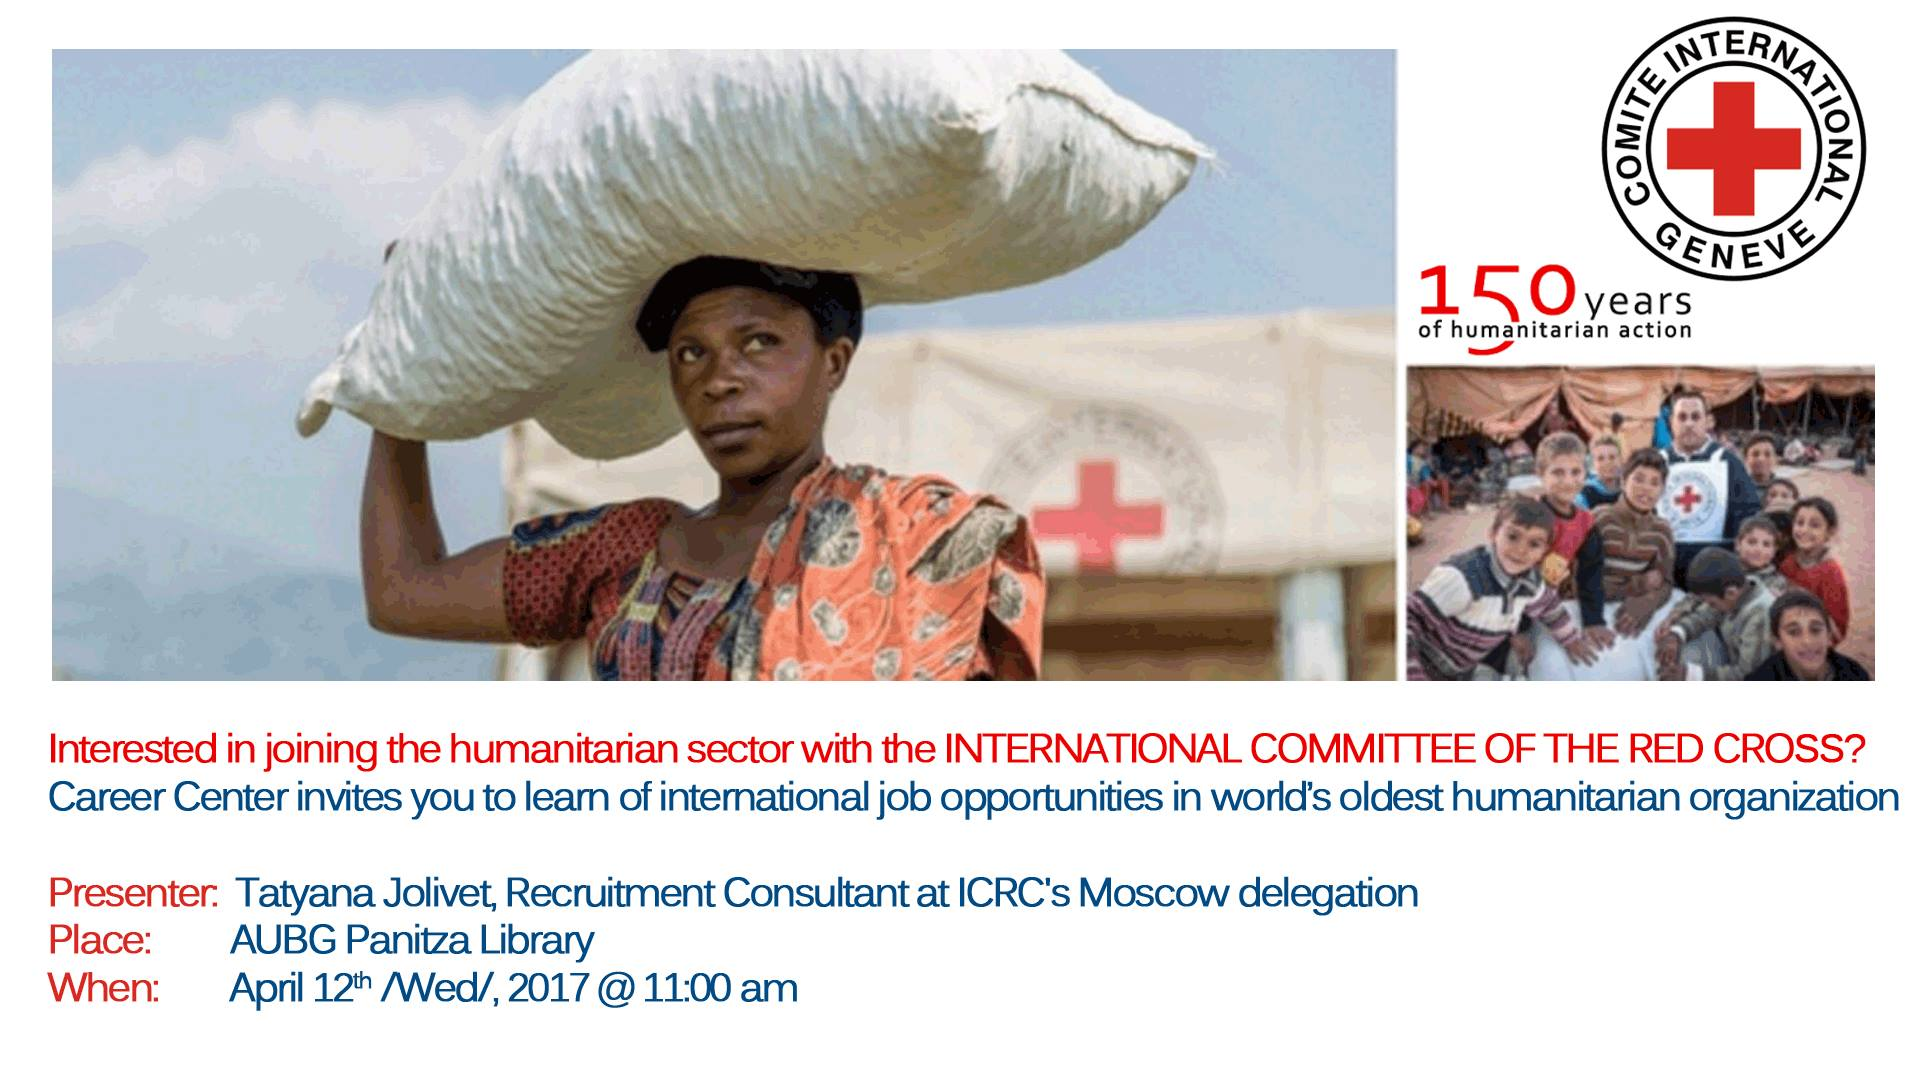 International Jobs at the Red Cross, Apr 12, 2017